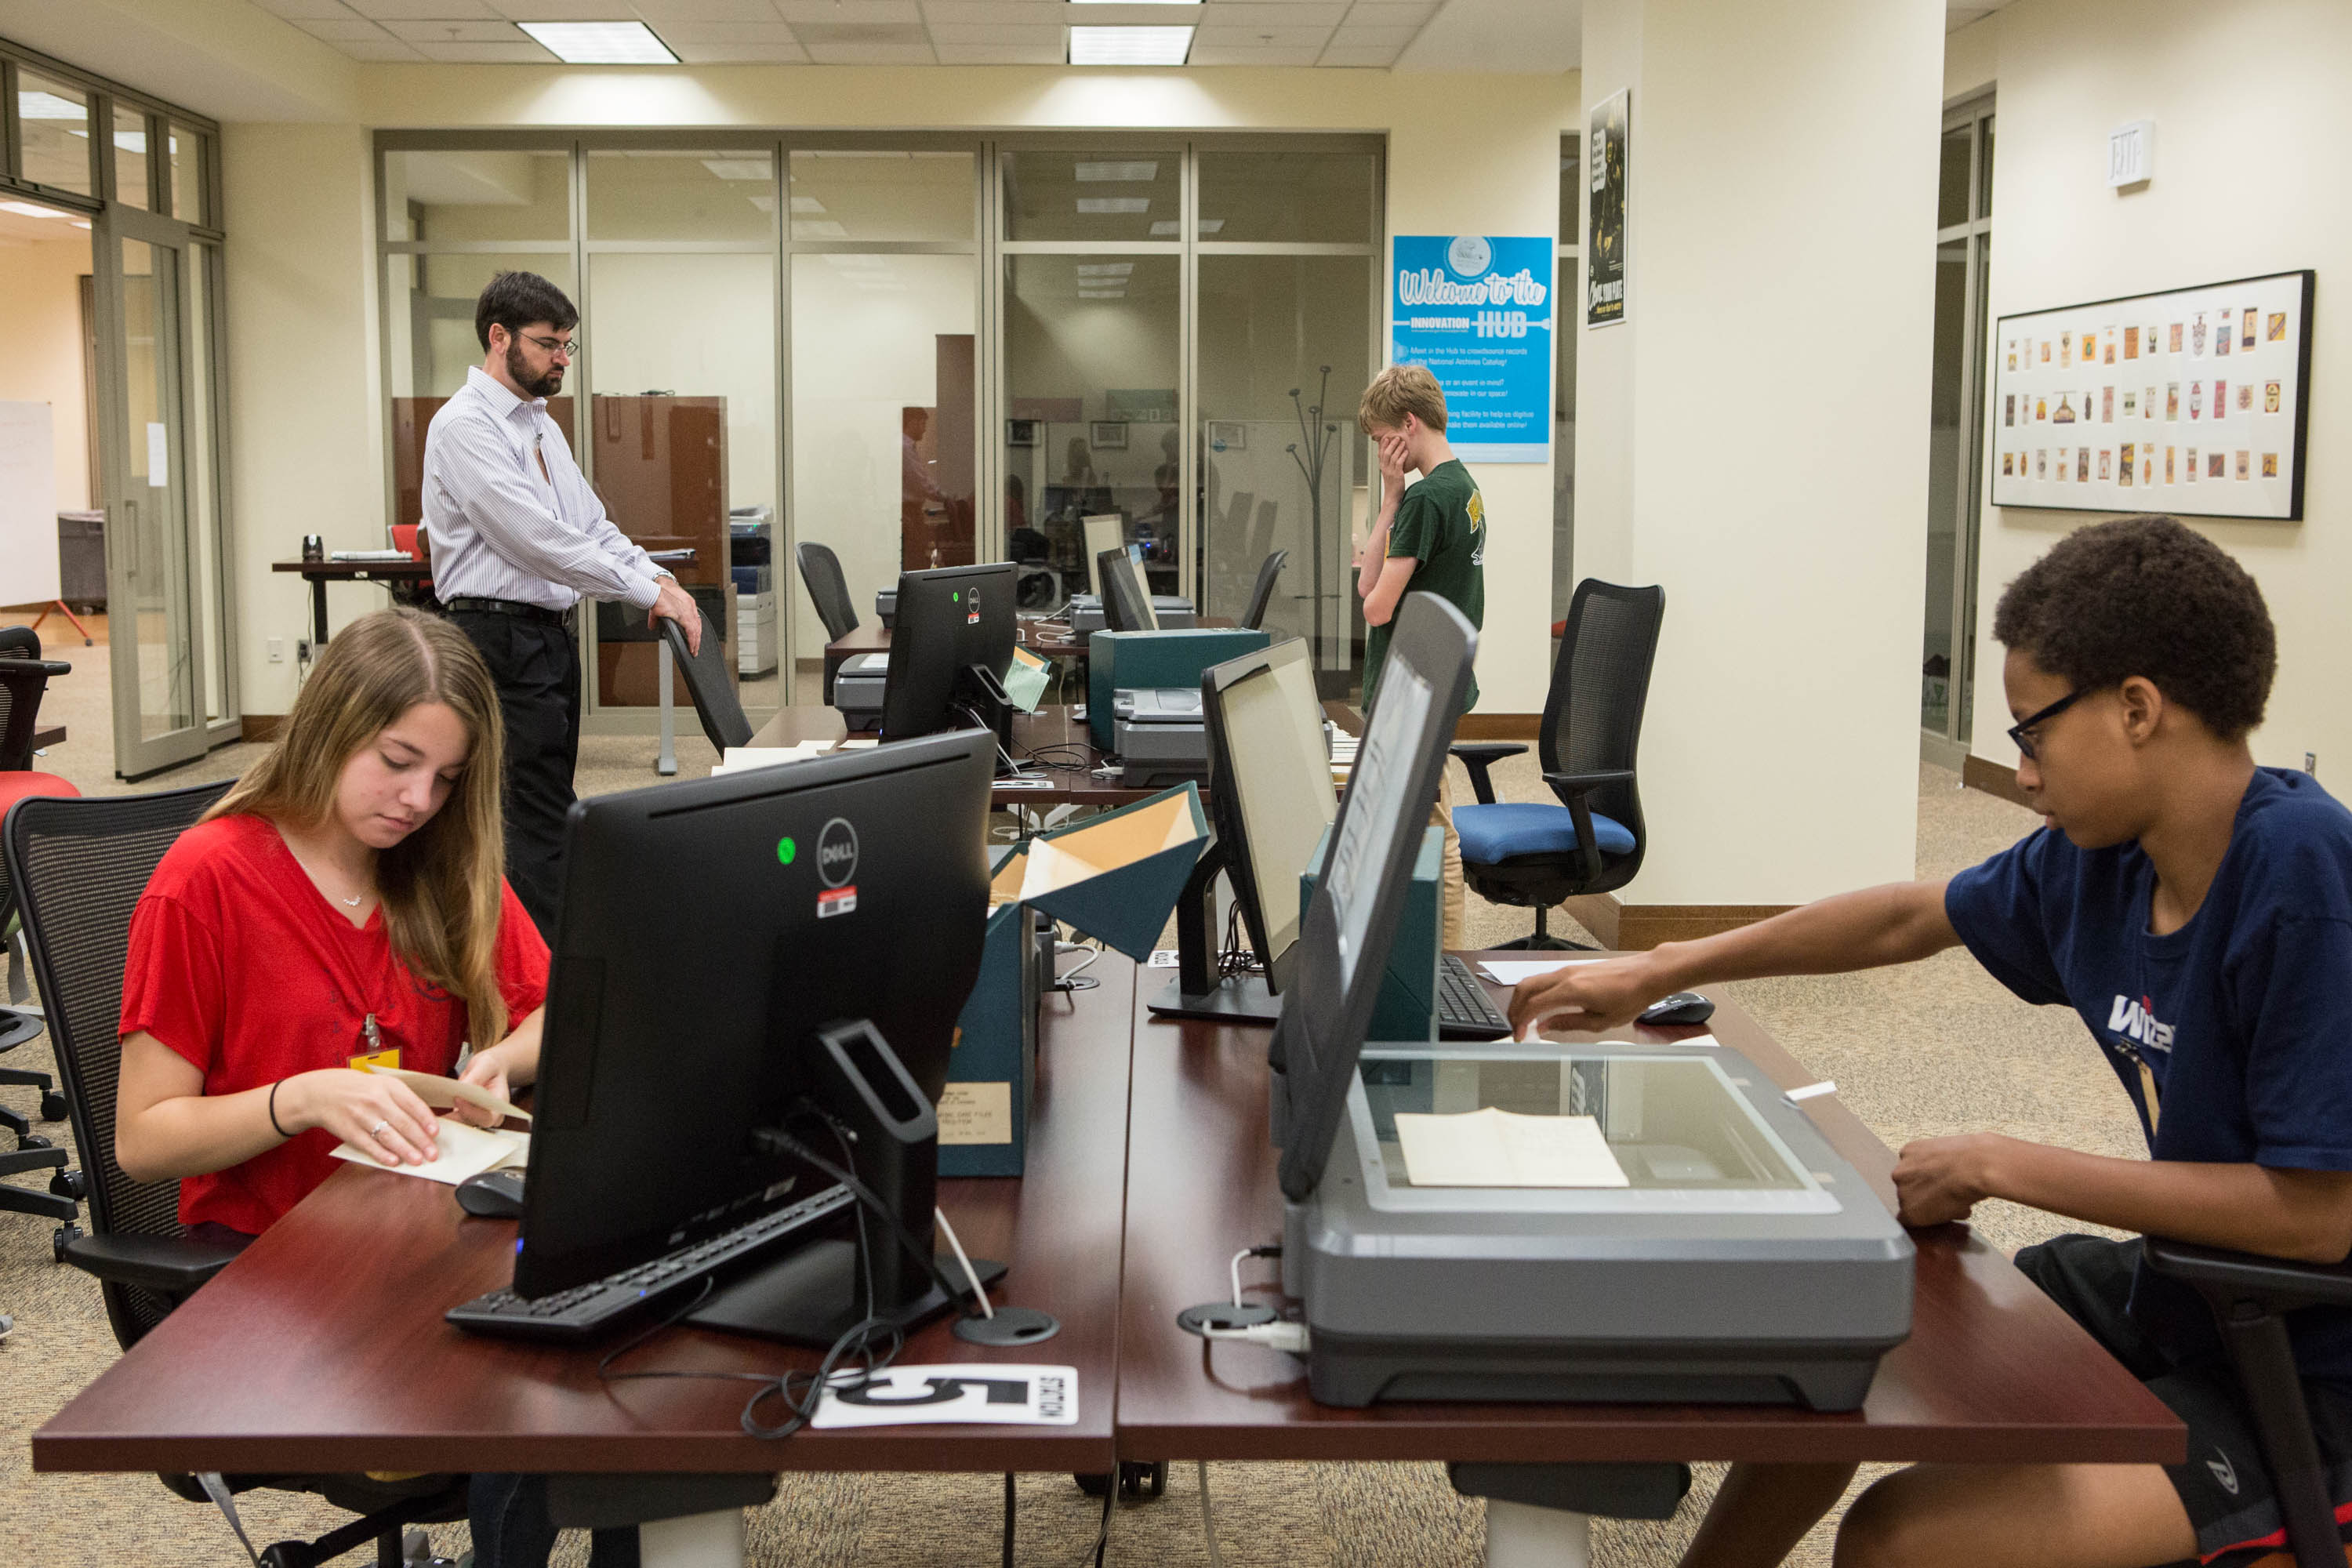 Three high school students and their THATclass leader, who volunteered to help with scanning in the digitization lab at the National Archives in Washington, DC, on July 20, 2016.